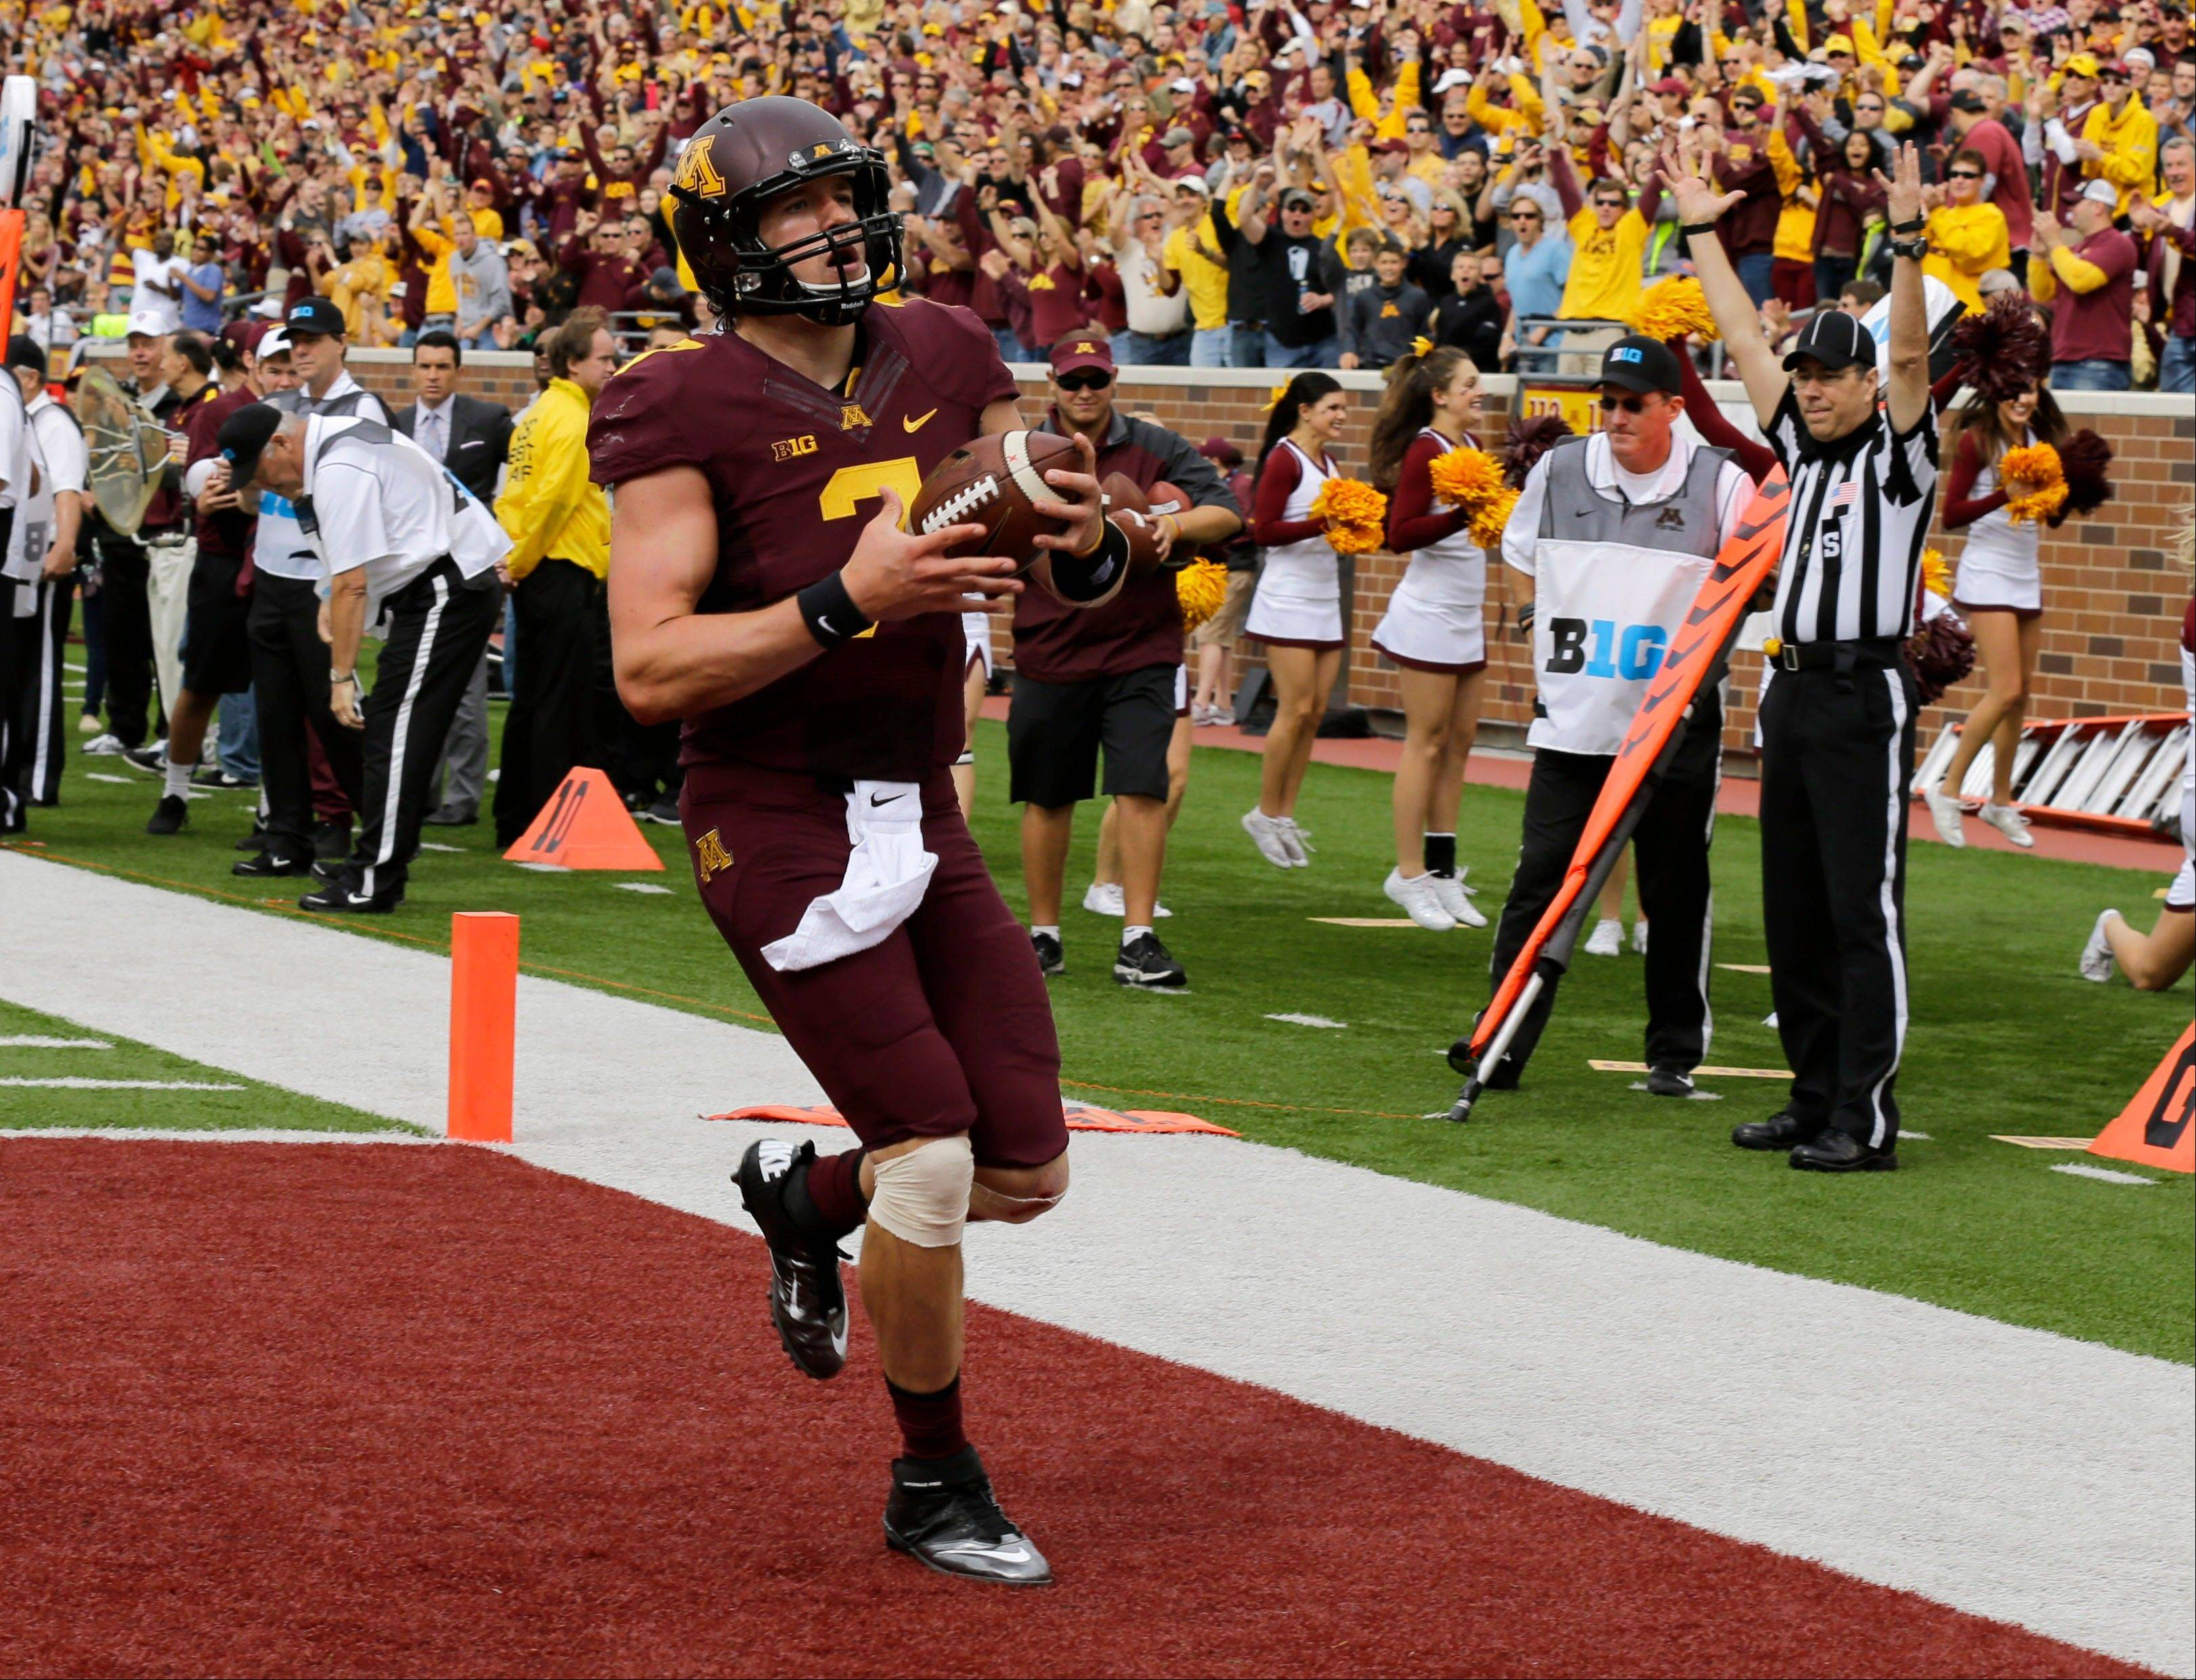 Minnesota quarterback Mitch Leidner (7) carries the ball into the end zone for a touchdown during the first quarter of the game against San Jose State in Minneapolis Saturday.